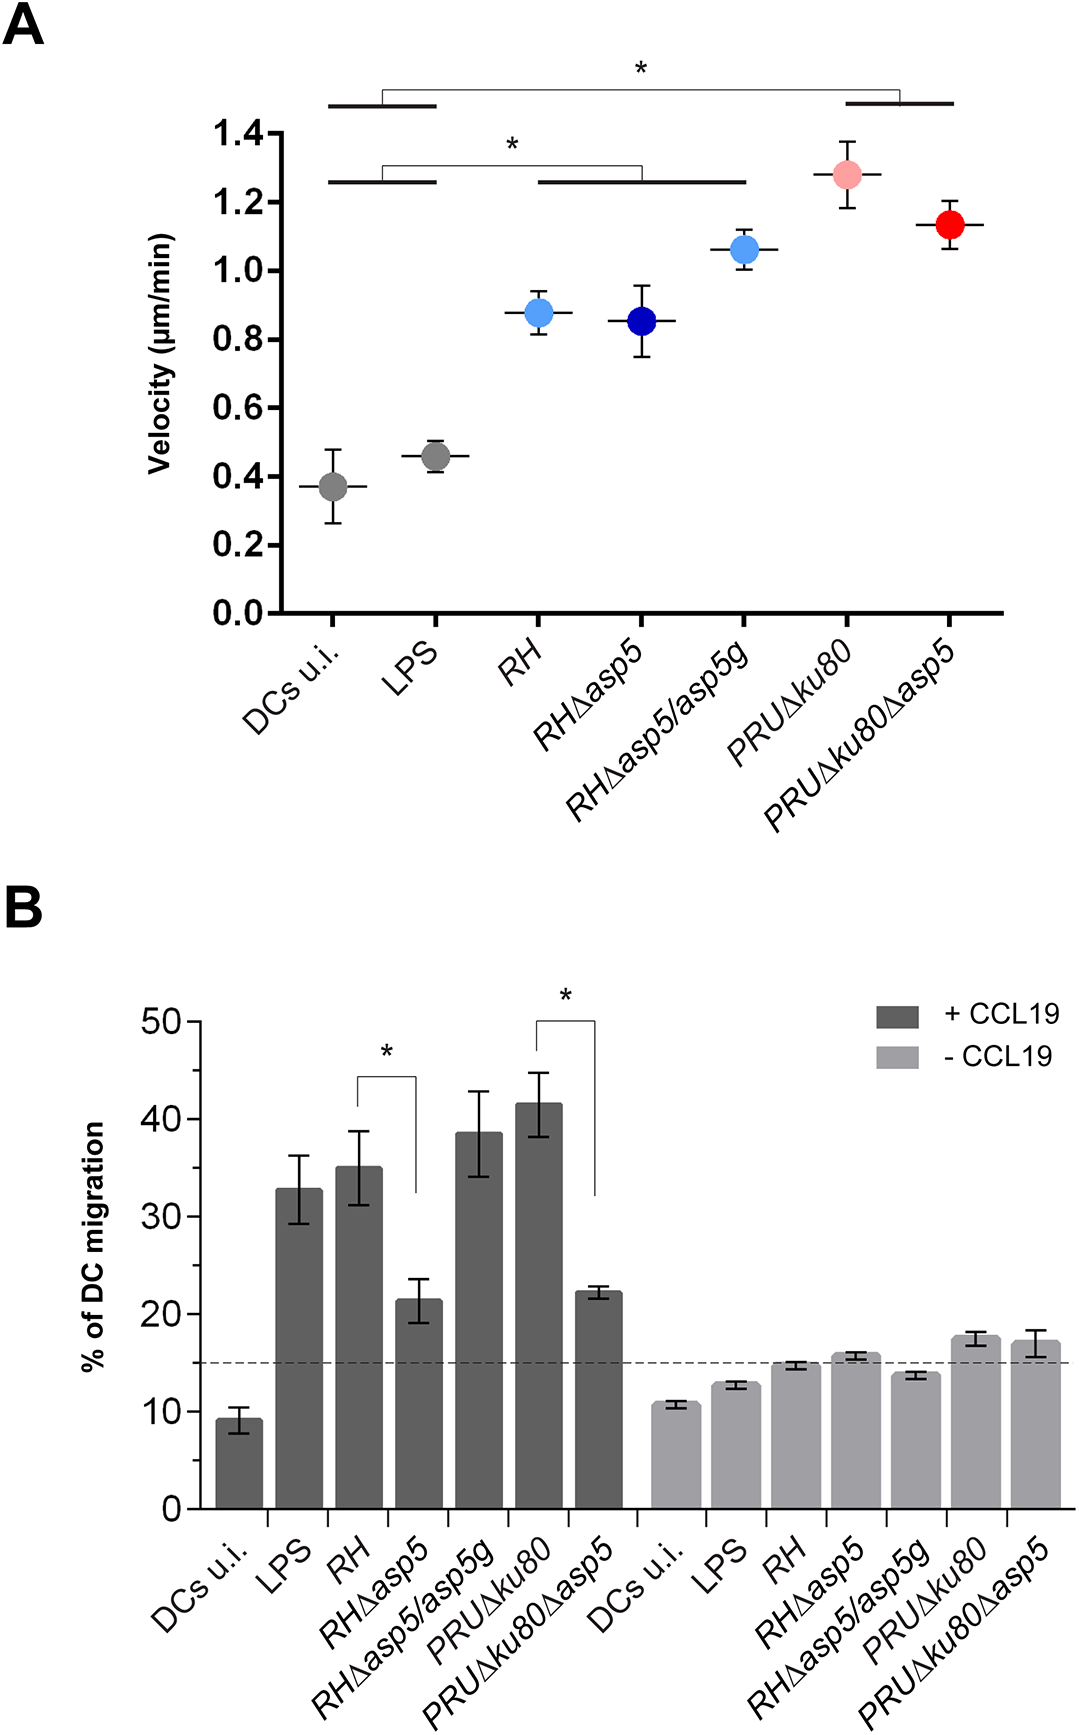 ASP5 affects dendritic cell (DCs) transmigration but not hypermotility.